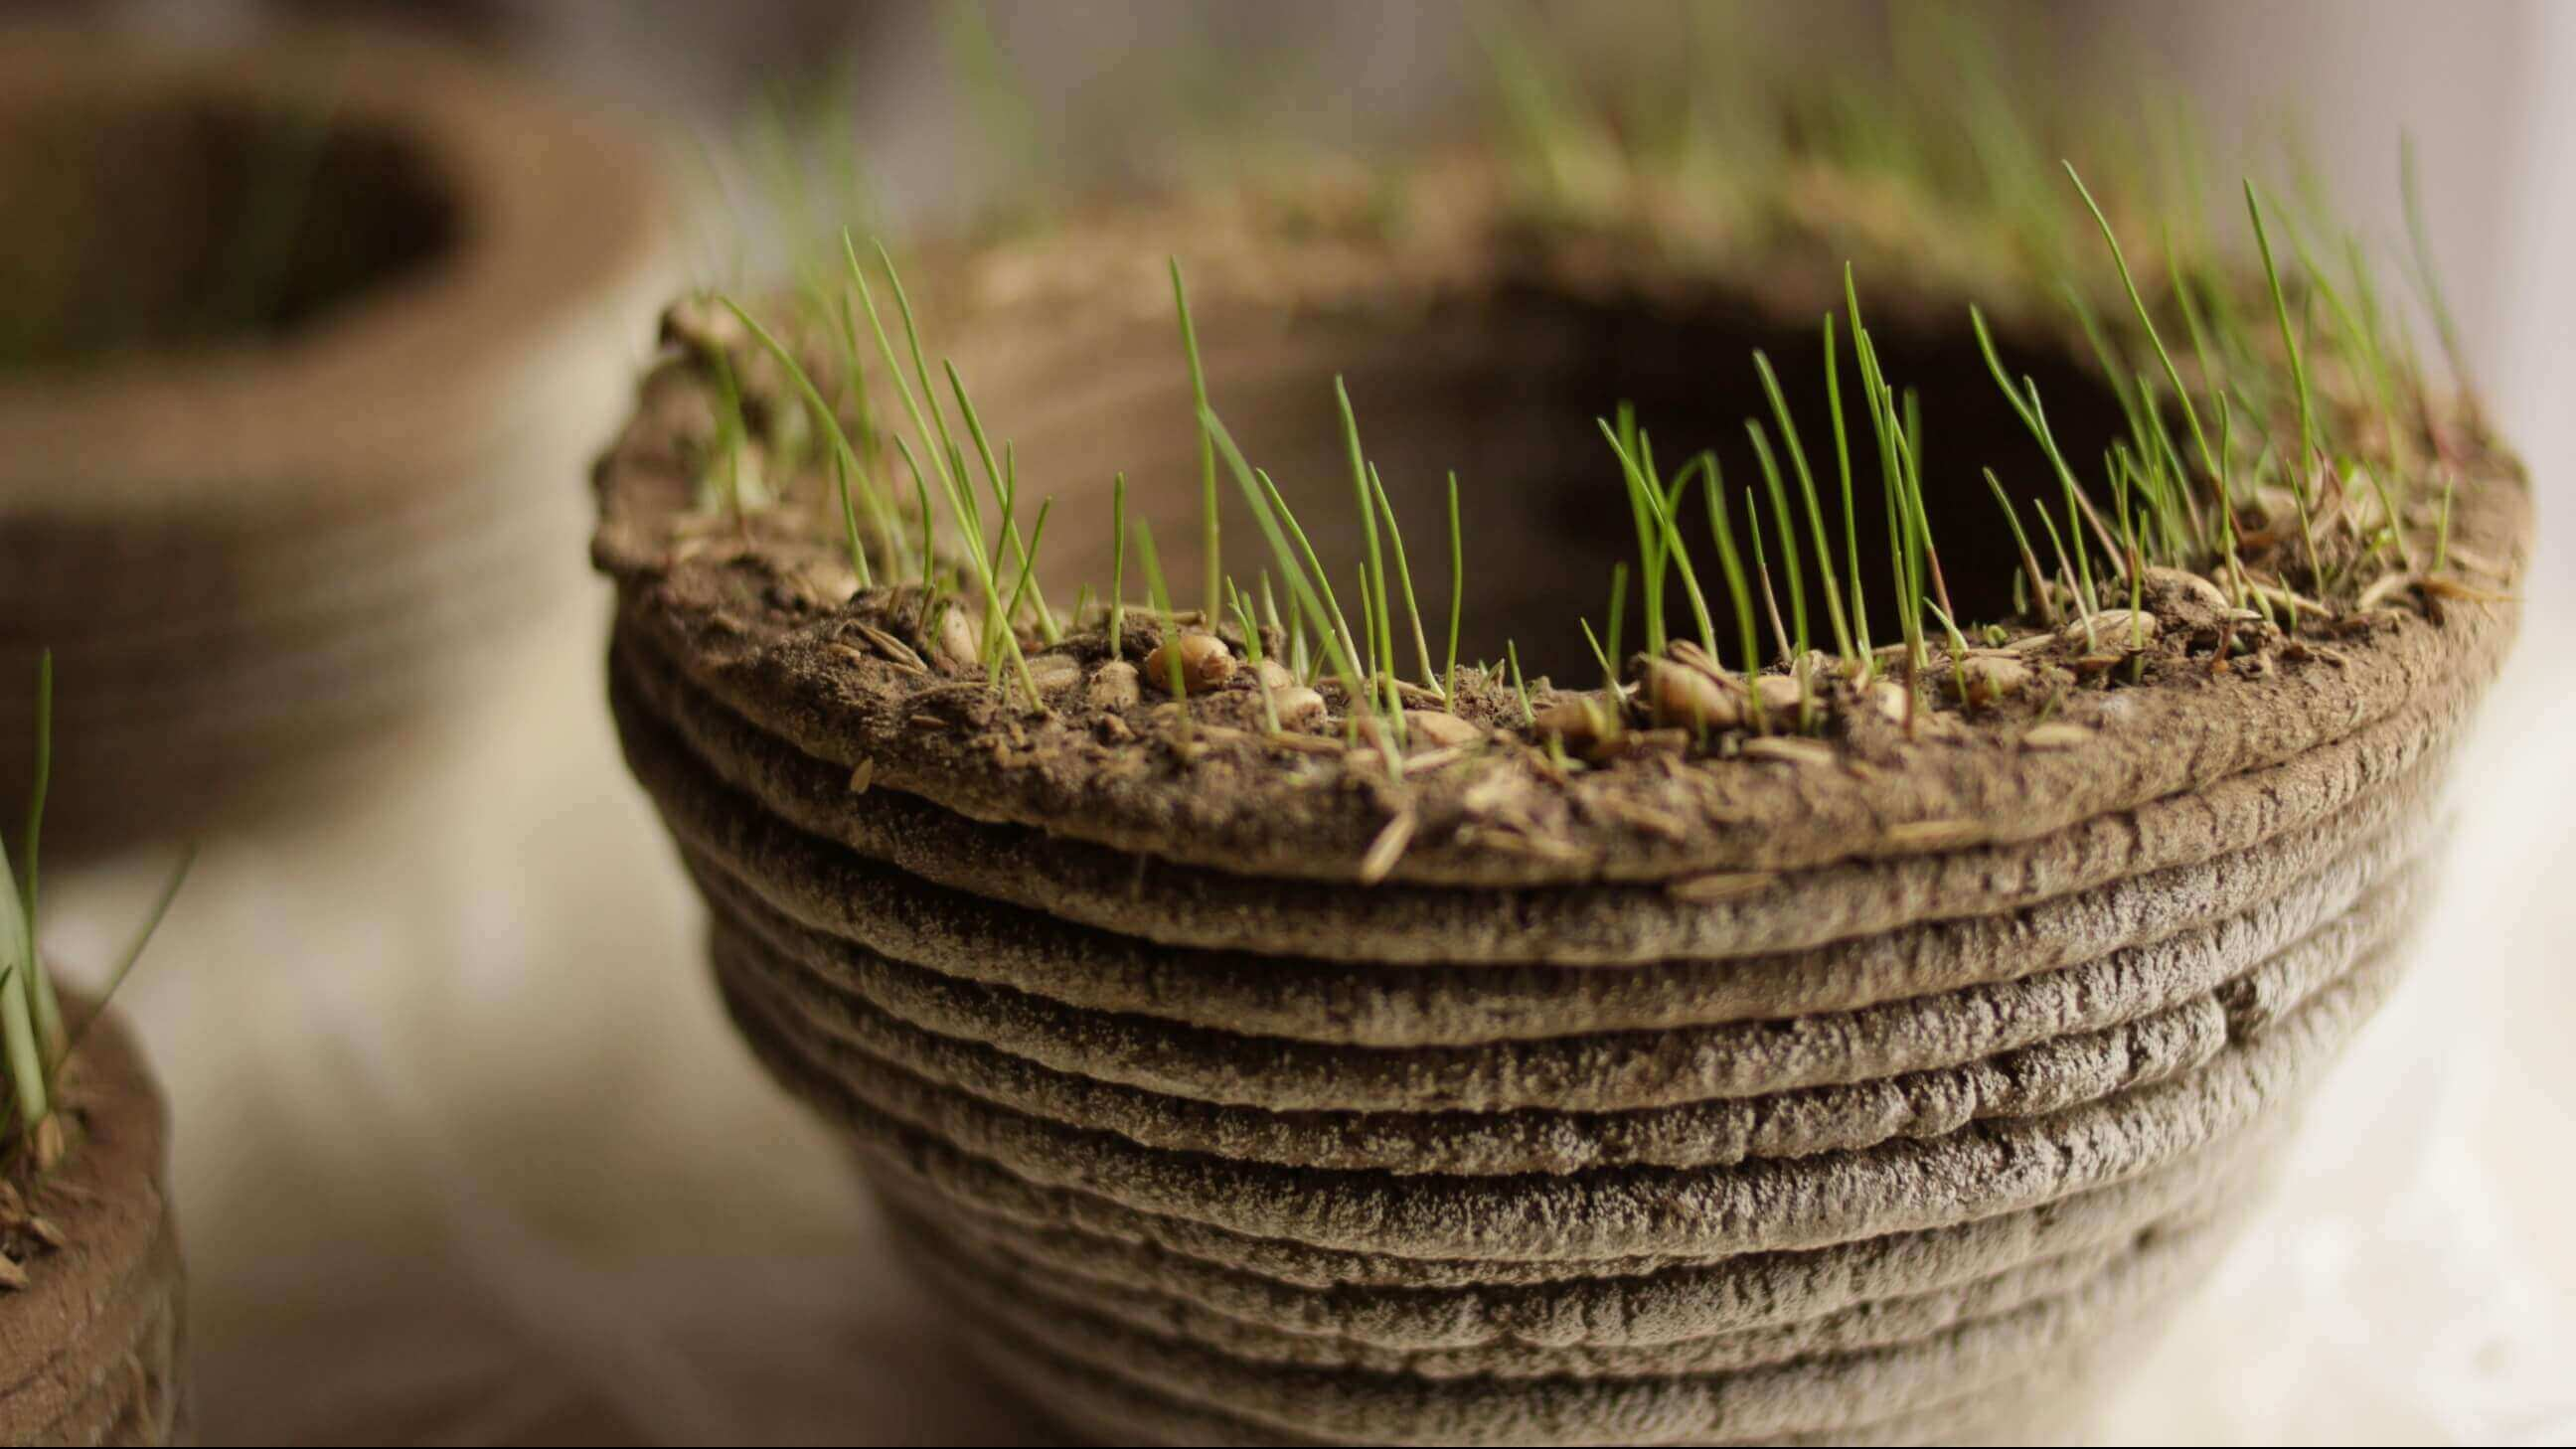 Print Green Revolutionizes Gardening with 3D Printing | All3DP